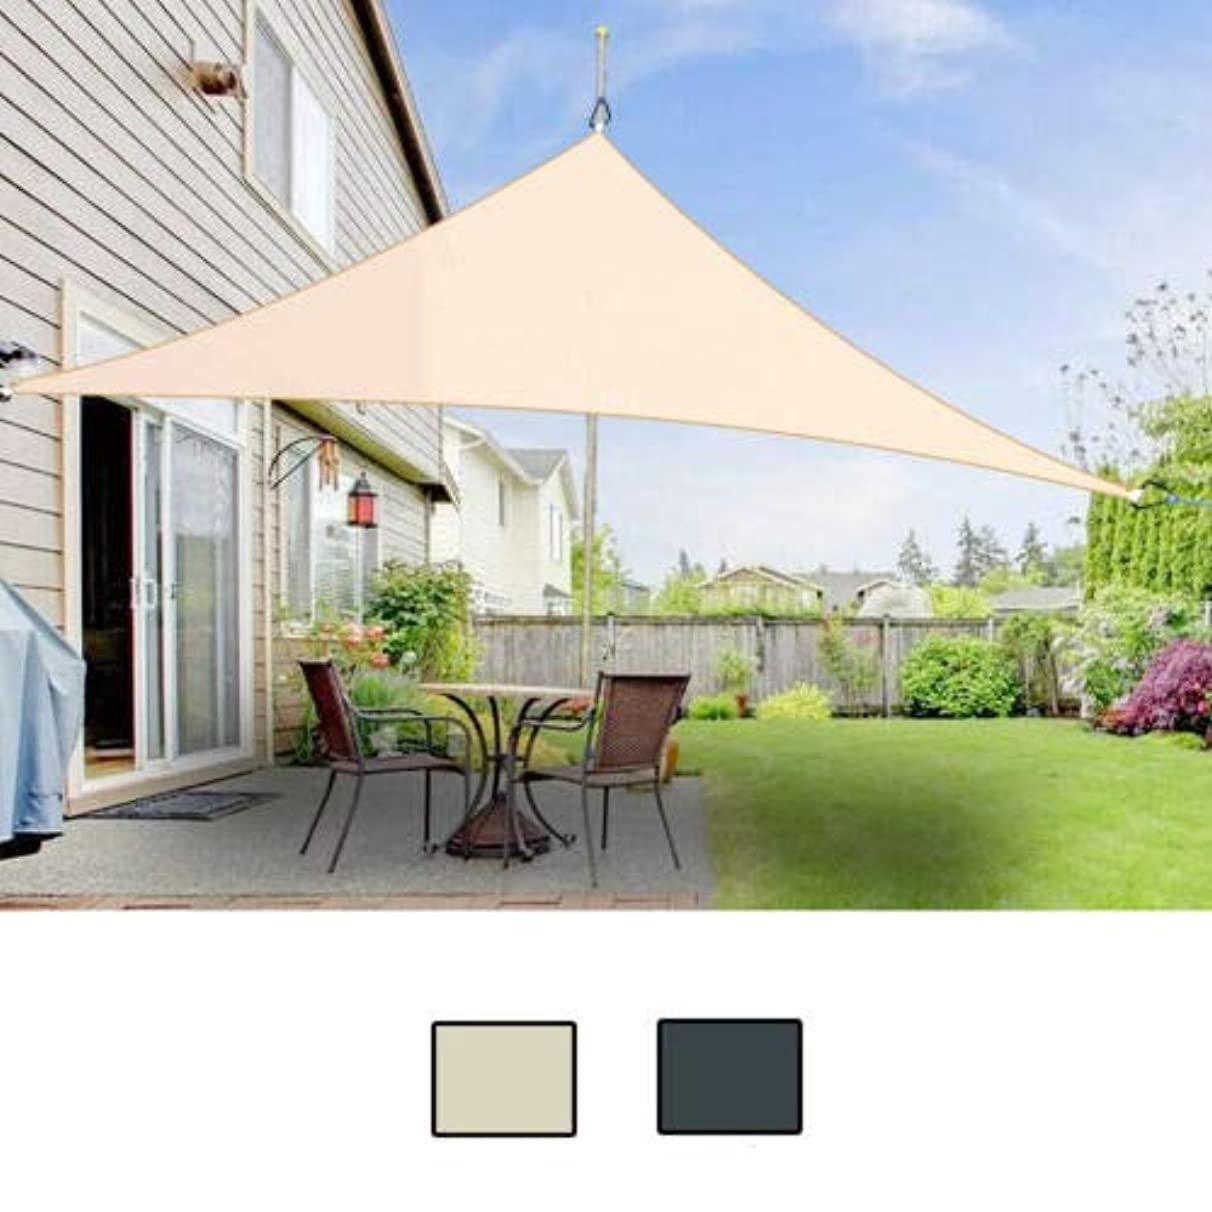 HEEGNPD Triangle 2x2x2m Waterproof Sun Shelter Sunshade Protection Outdoor Canopy Garden Patio Pool Shade Sail Awning Camping Tent Cloth irb471571